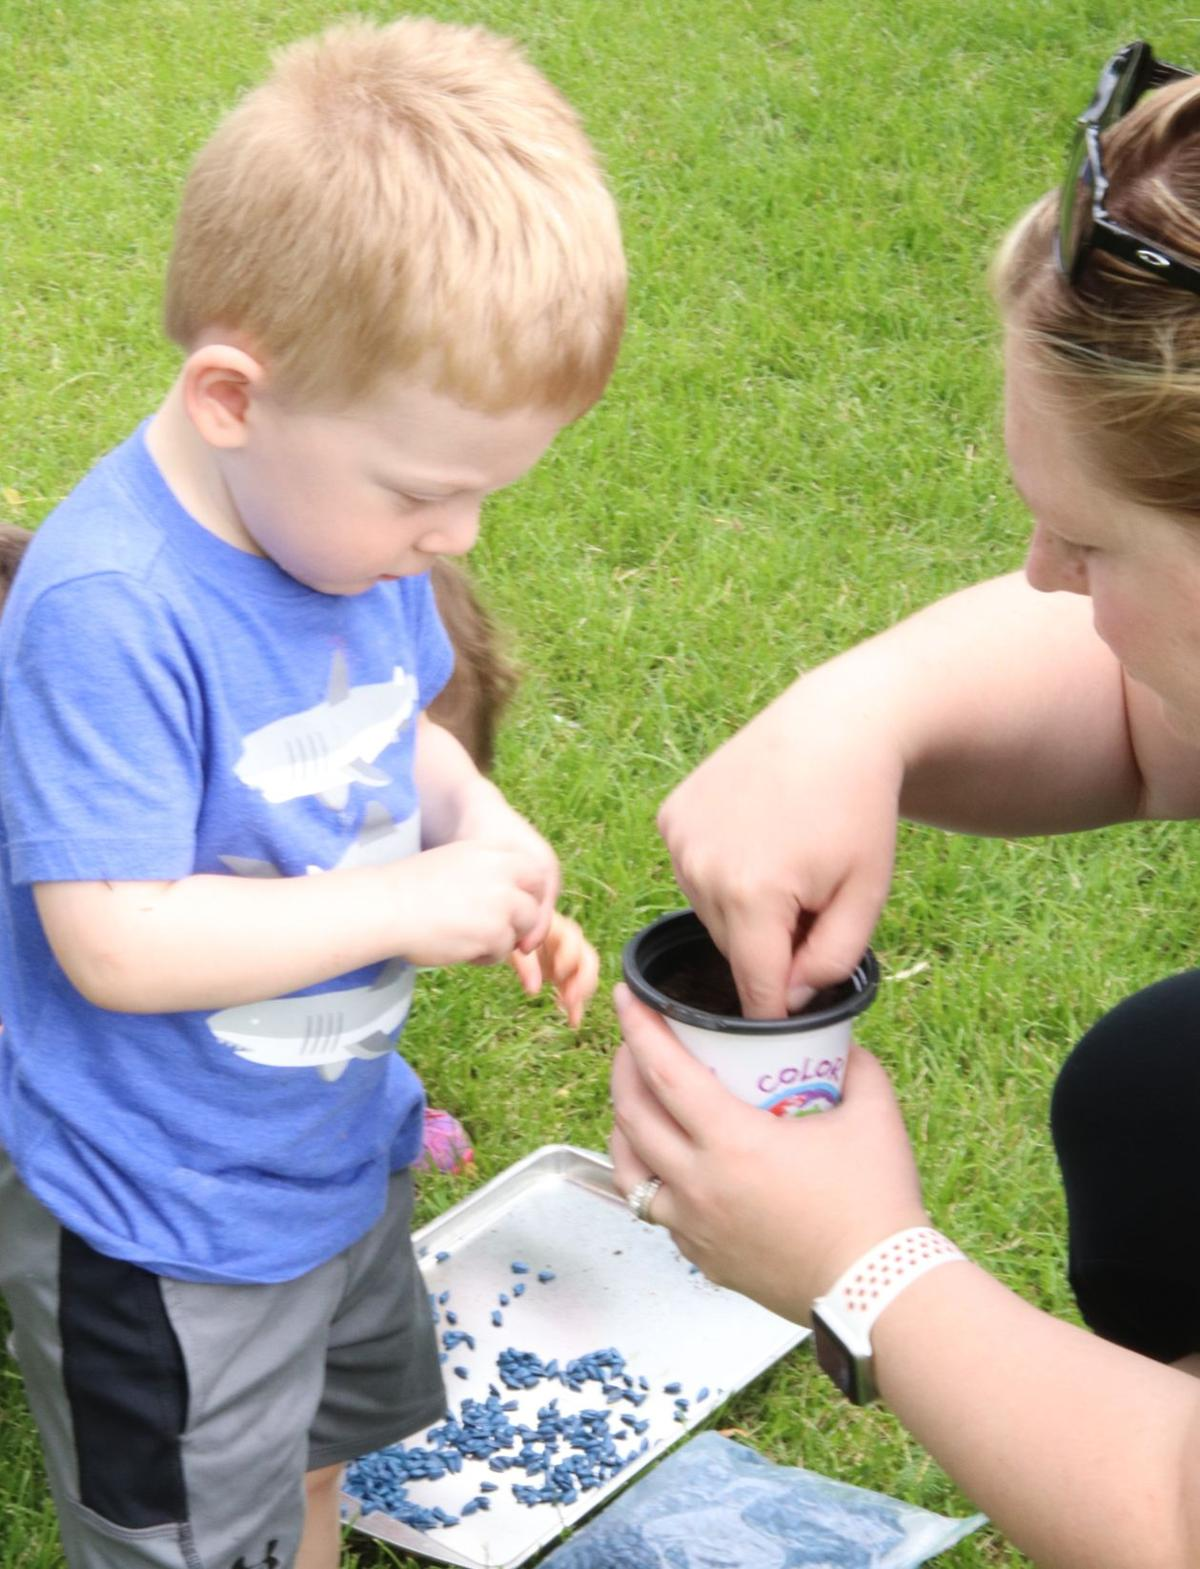 Itty Bitty Einsteins learn plants at Discovery Center